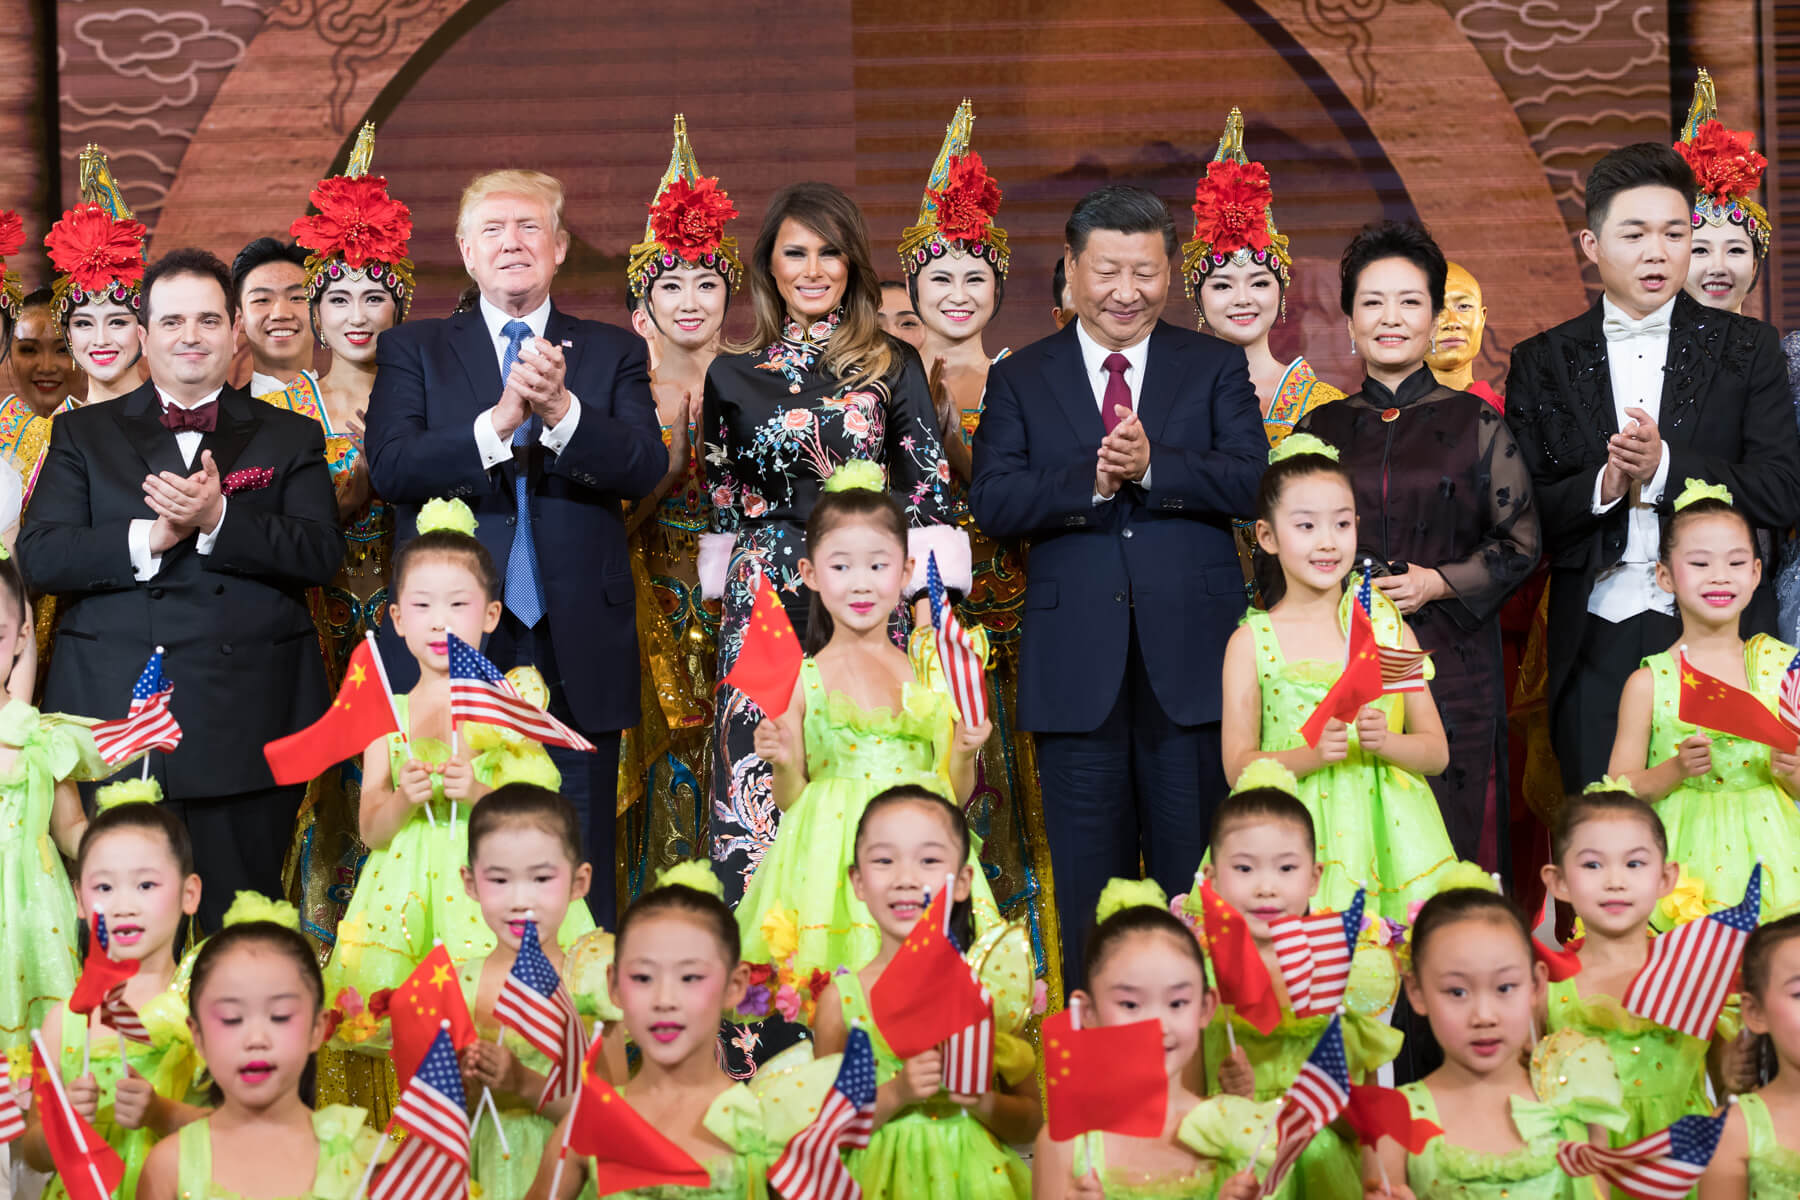 Yinhong - President Donald J. Trump and President Xi Jinping during Trump's visit to China in November 2017. PAS China